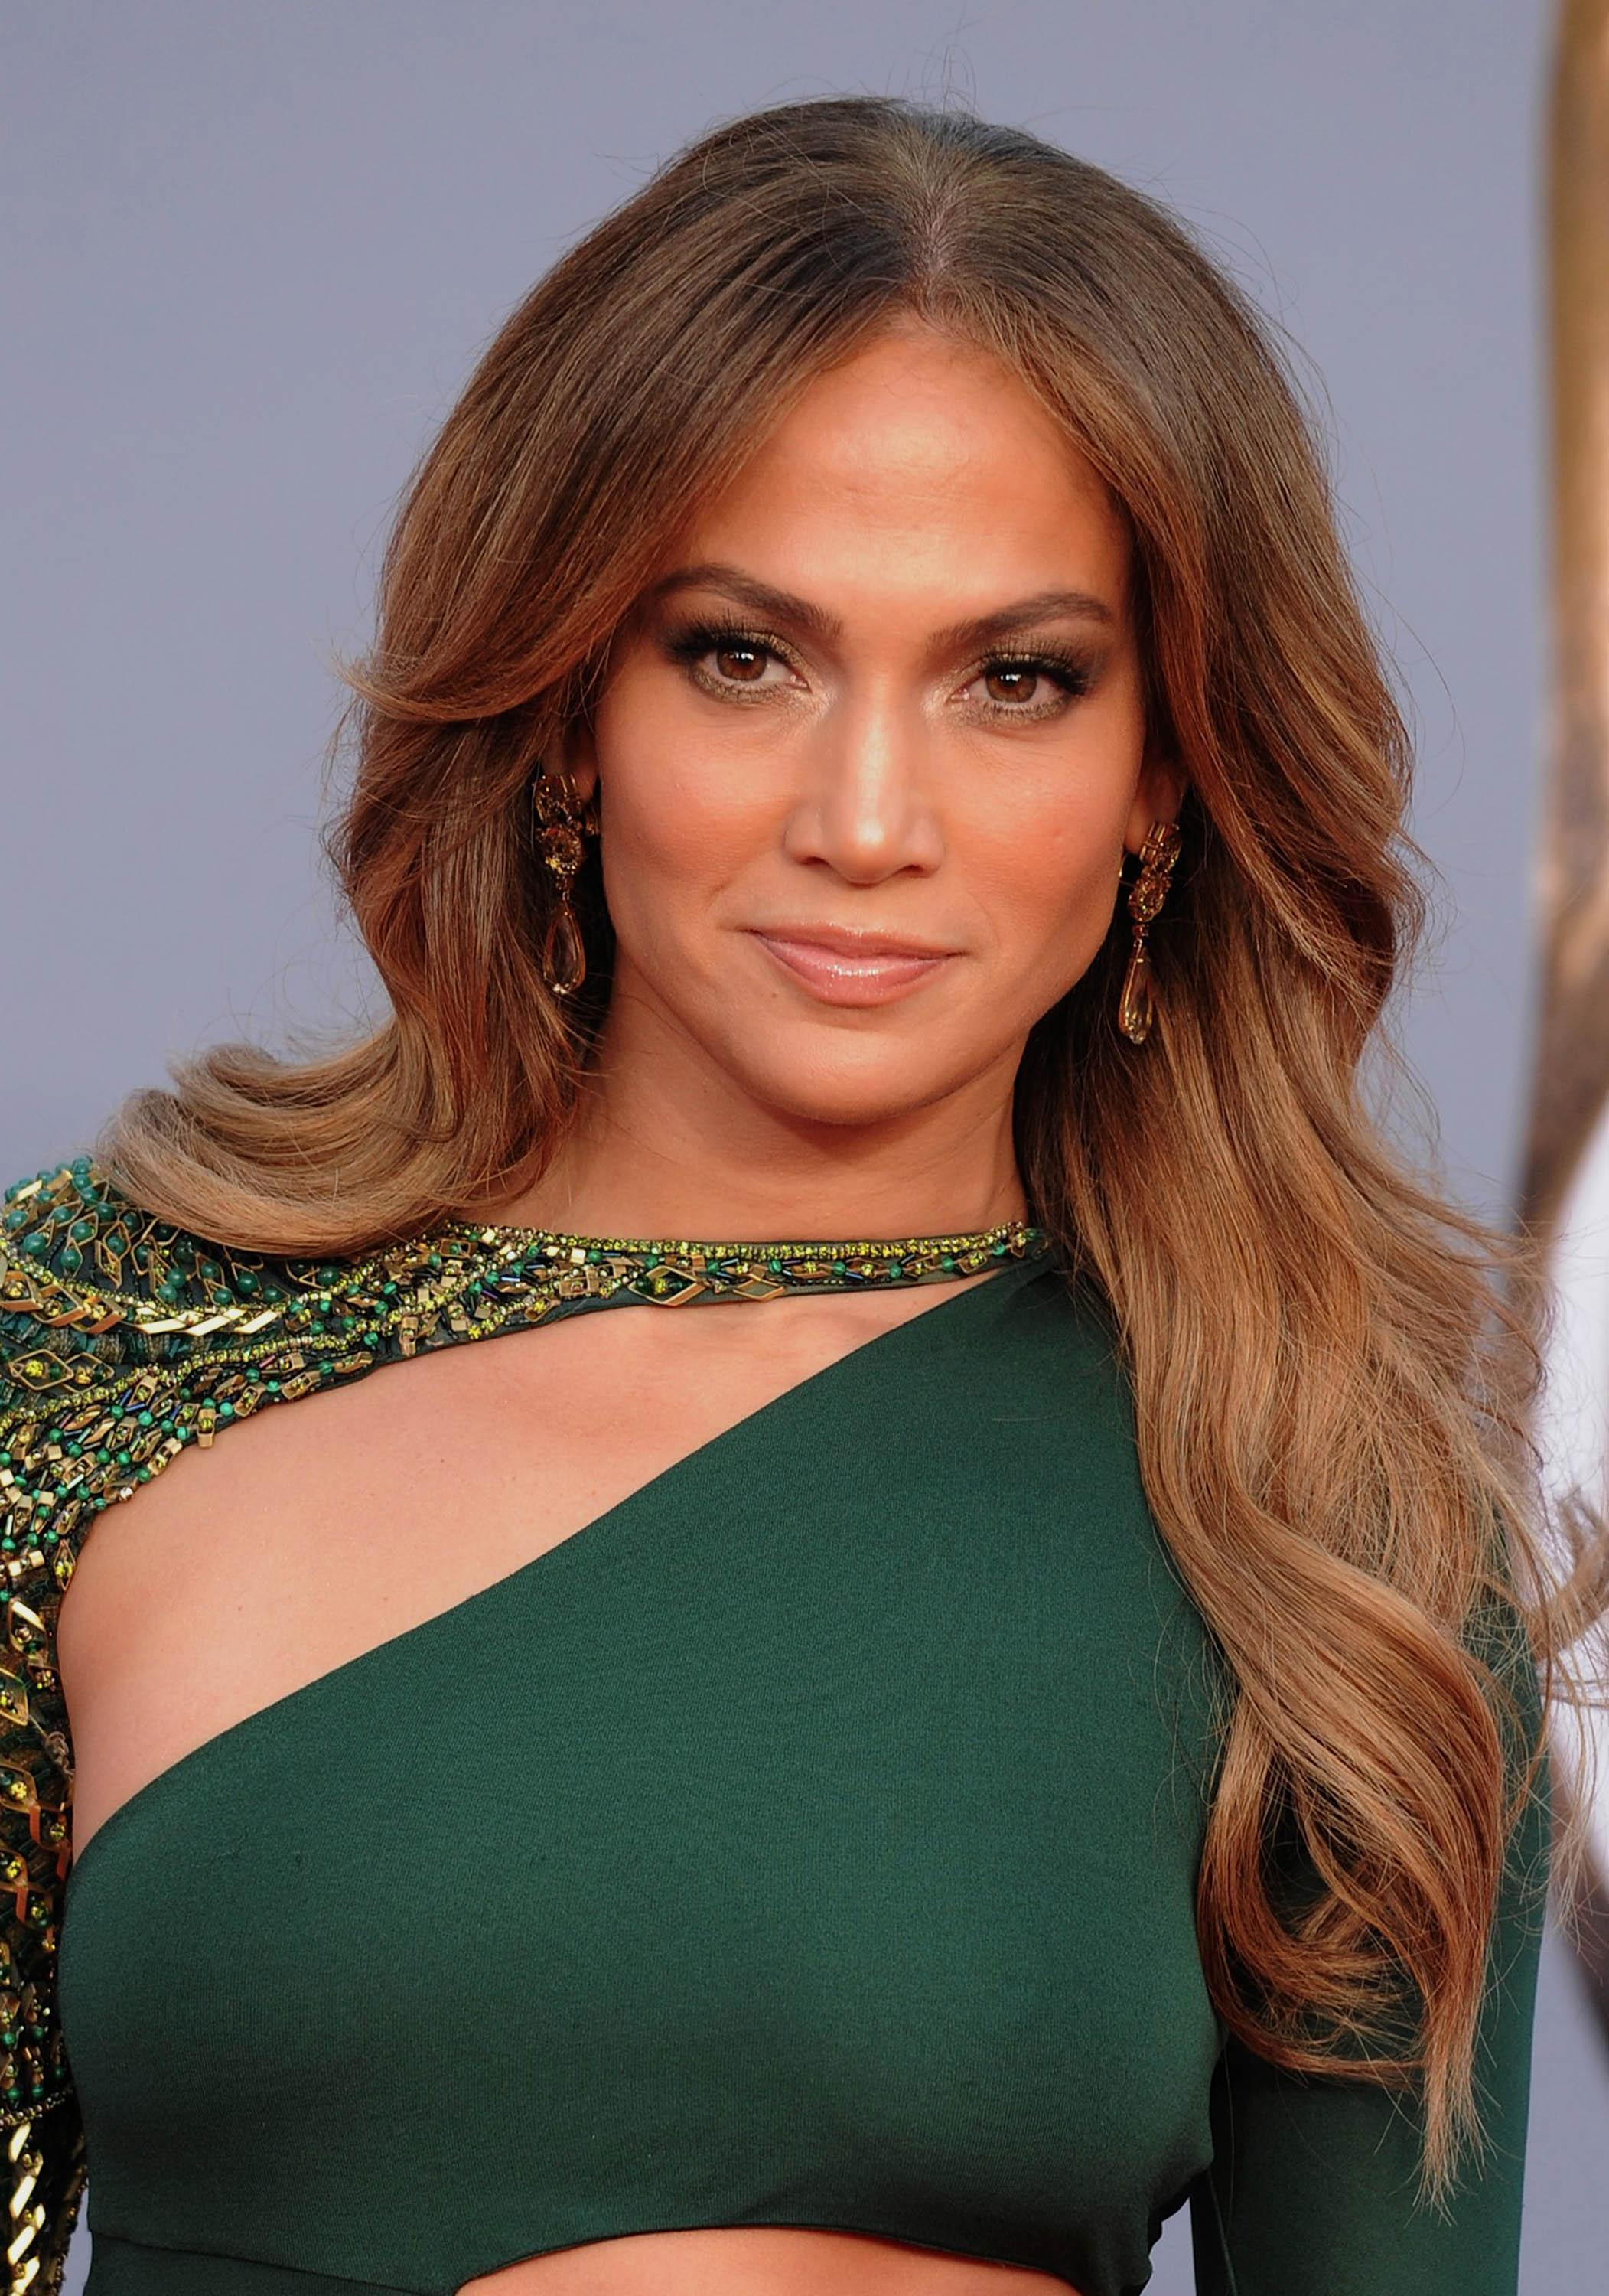 jennifer-lopez-2011-L-qfW2aN.jpeg